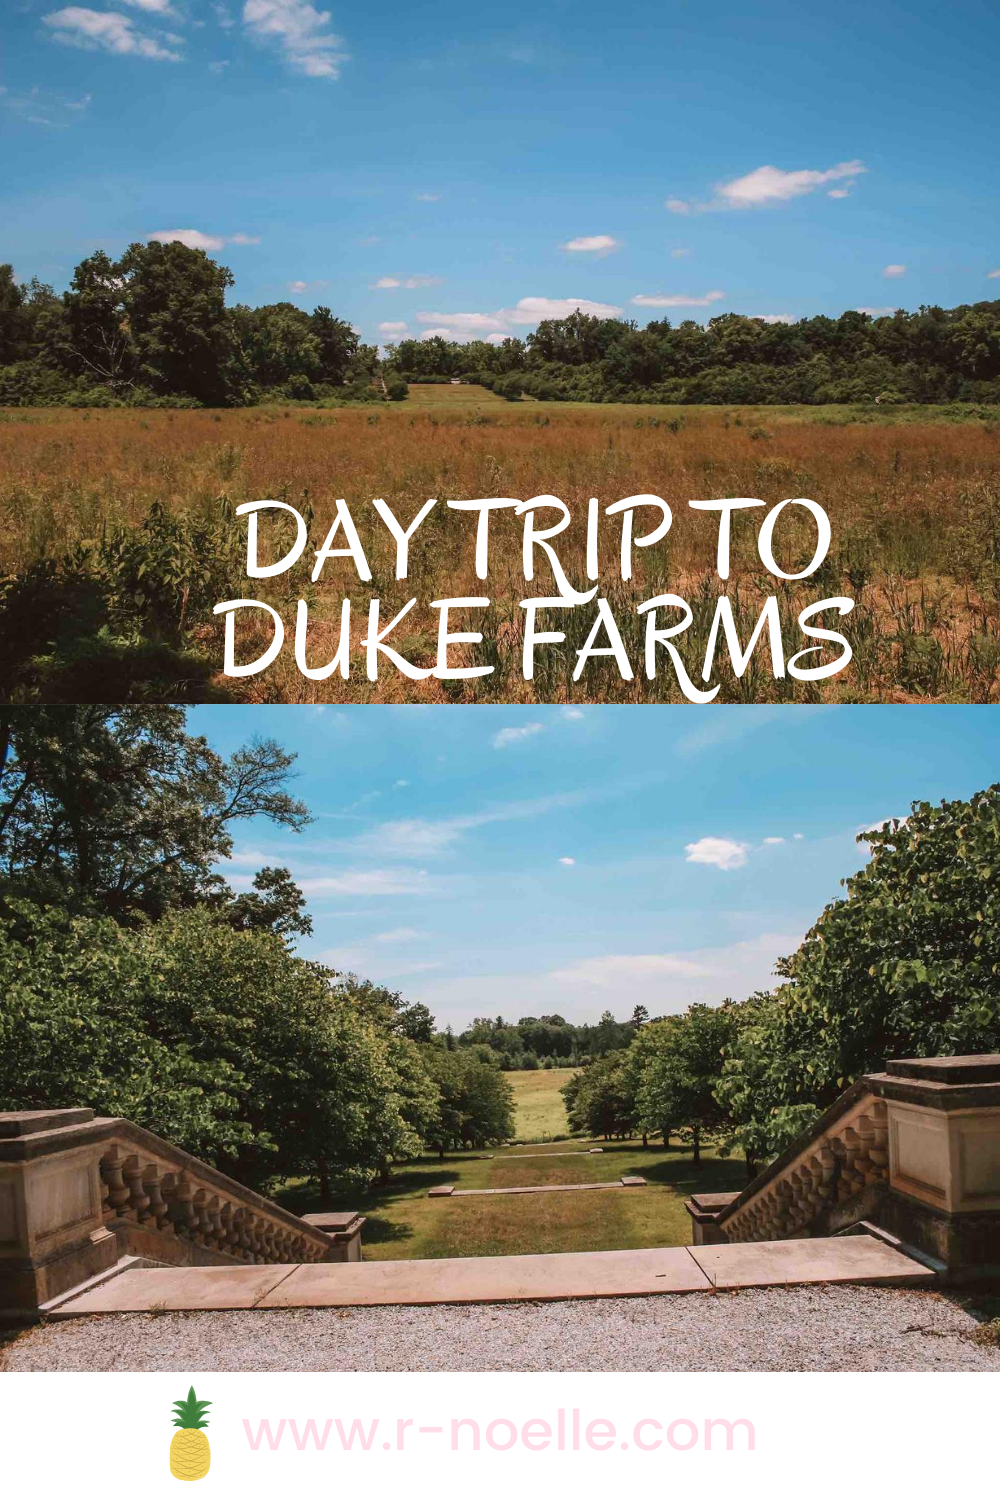 Duke Farm's has 18 miles worth of paved bike trails throughout the grounds. There are stunning gardens and places to enjoy the space. The best part, it is free!